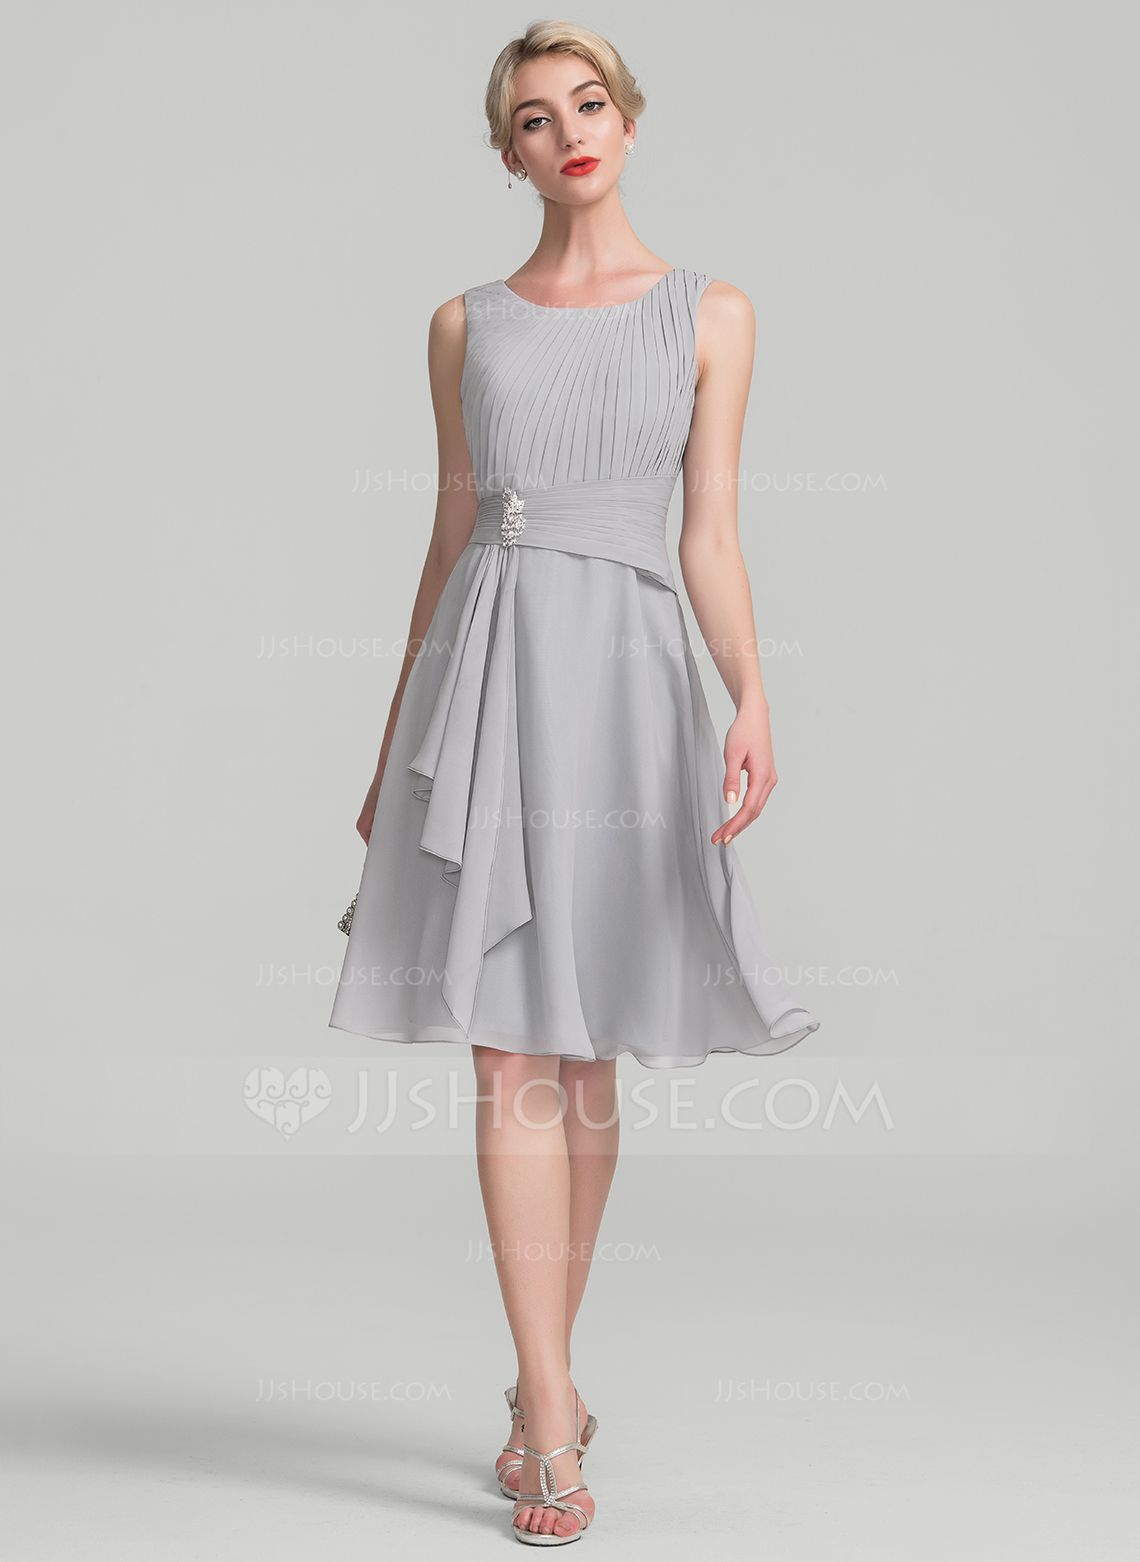 35ed422d7d76 A-Line Princess Scoop Neck Knee-Length Chiffon Mother of the Bride Dress  With Beading Cascading Ruffles (008114231) - JJsHouse